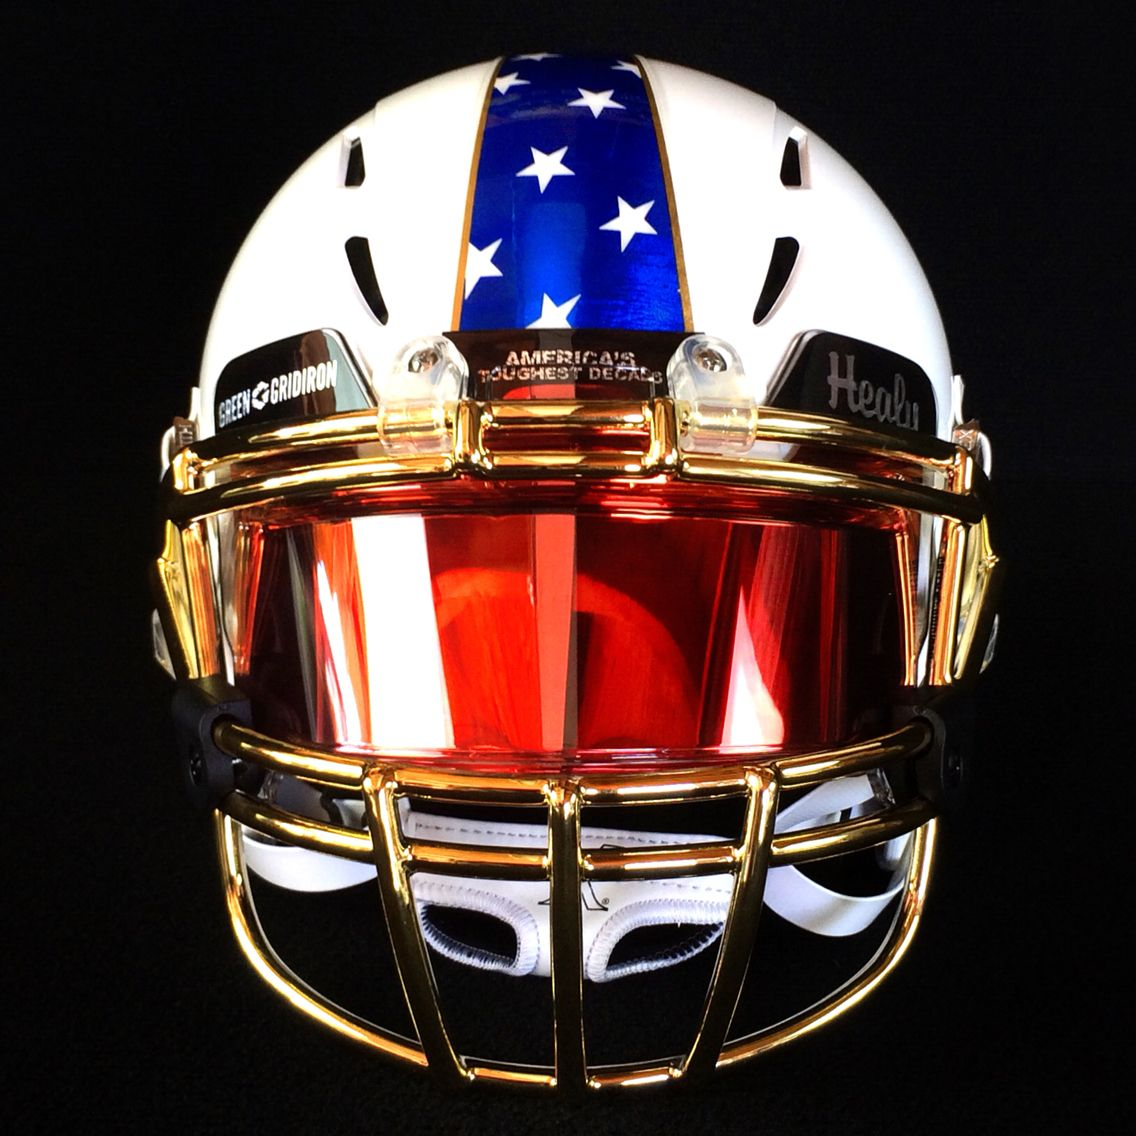 0edb935b MEMORIAL DAY helmet created by Green Gridiron, Healy Awards & SHOC. White  Xenith Epic helmet with Gold Chrome XRS-22 facemask by Green Gridiron, ...